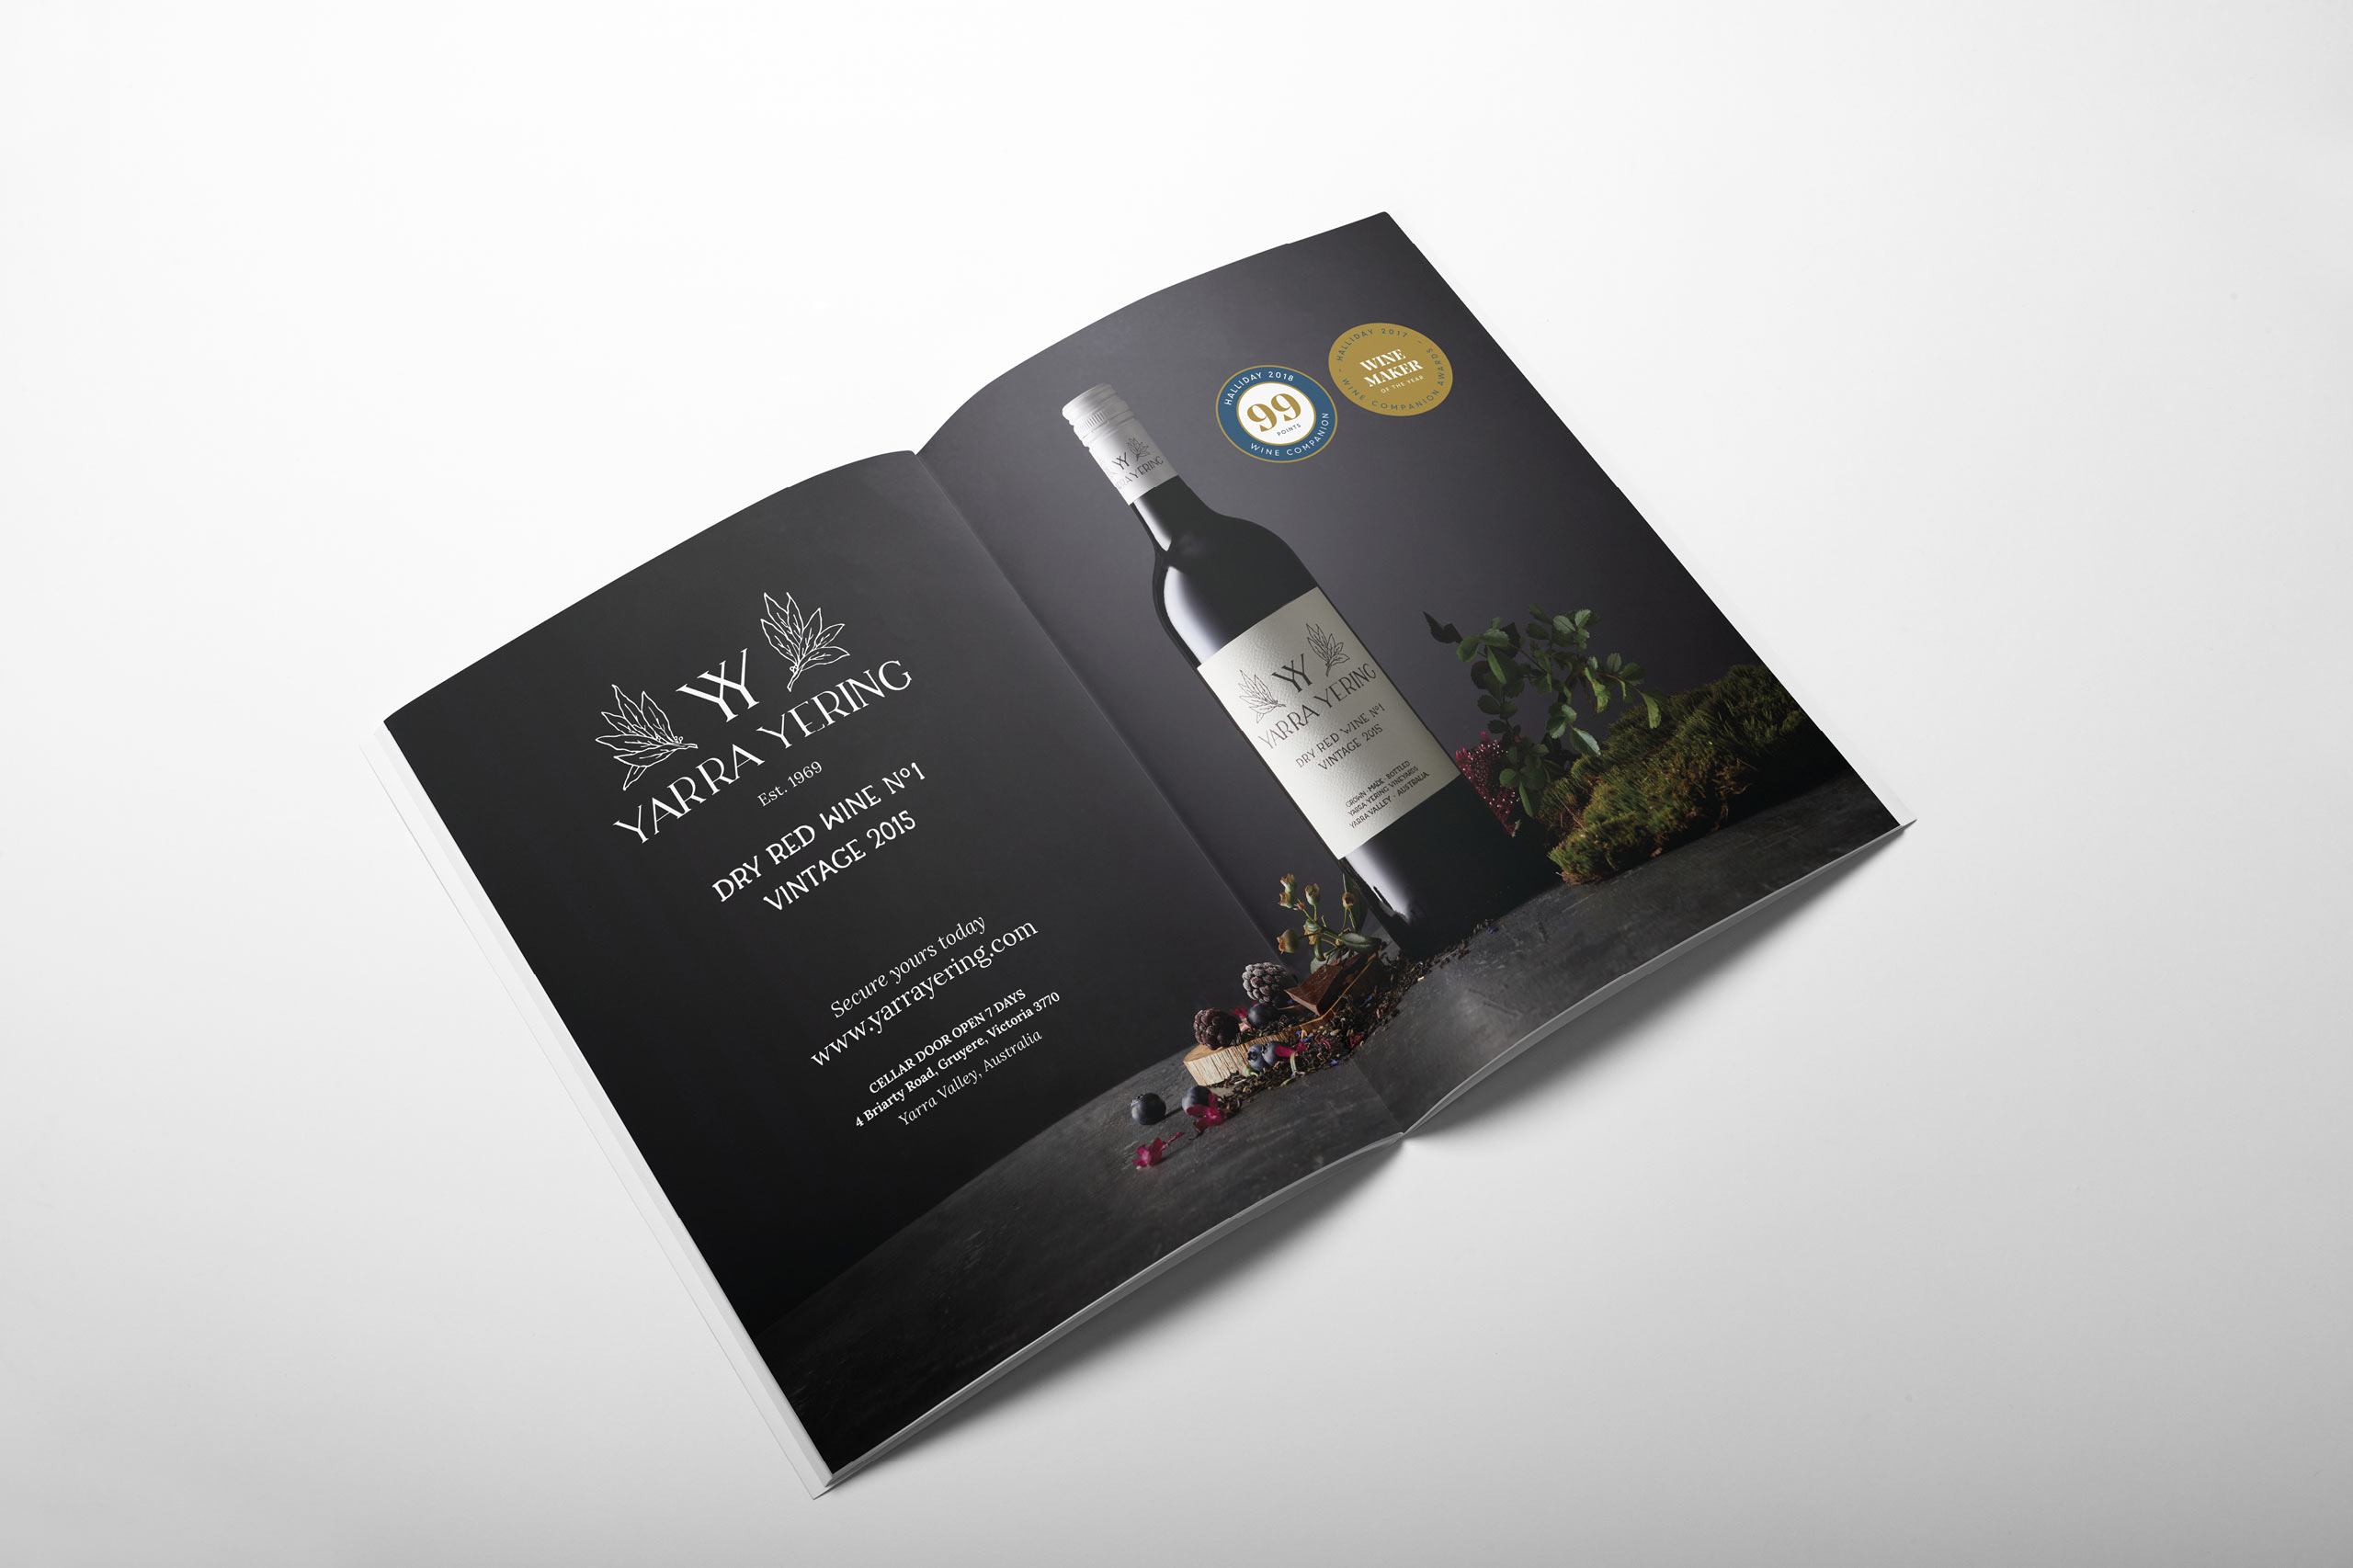 yarra yering magazine 02 advertising maker and co design web